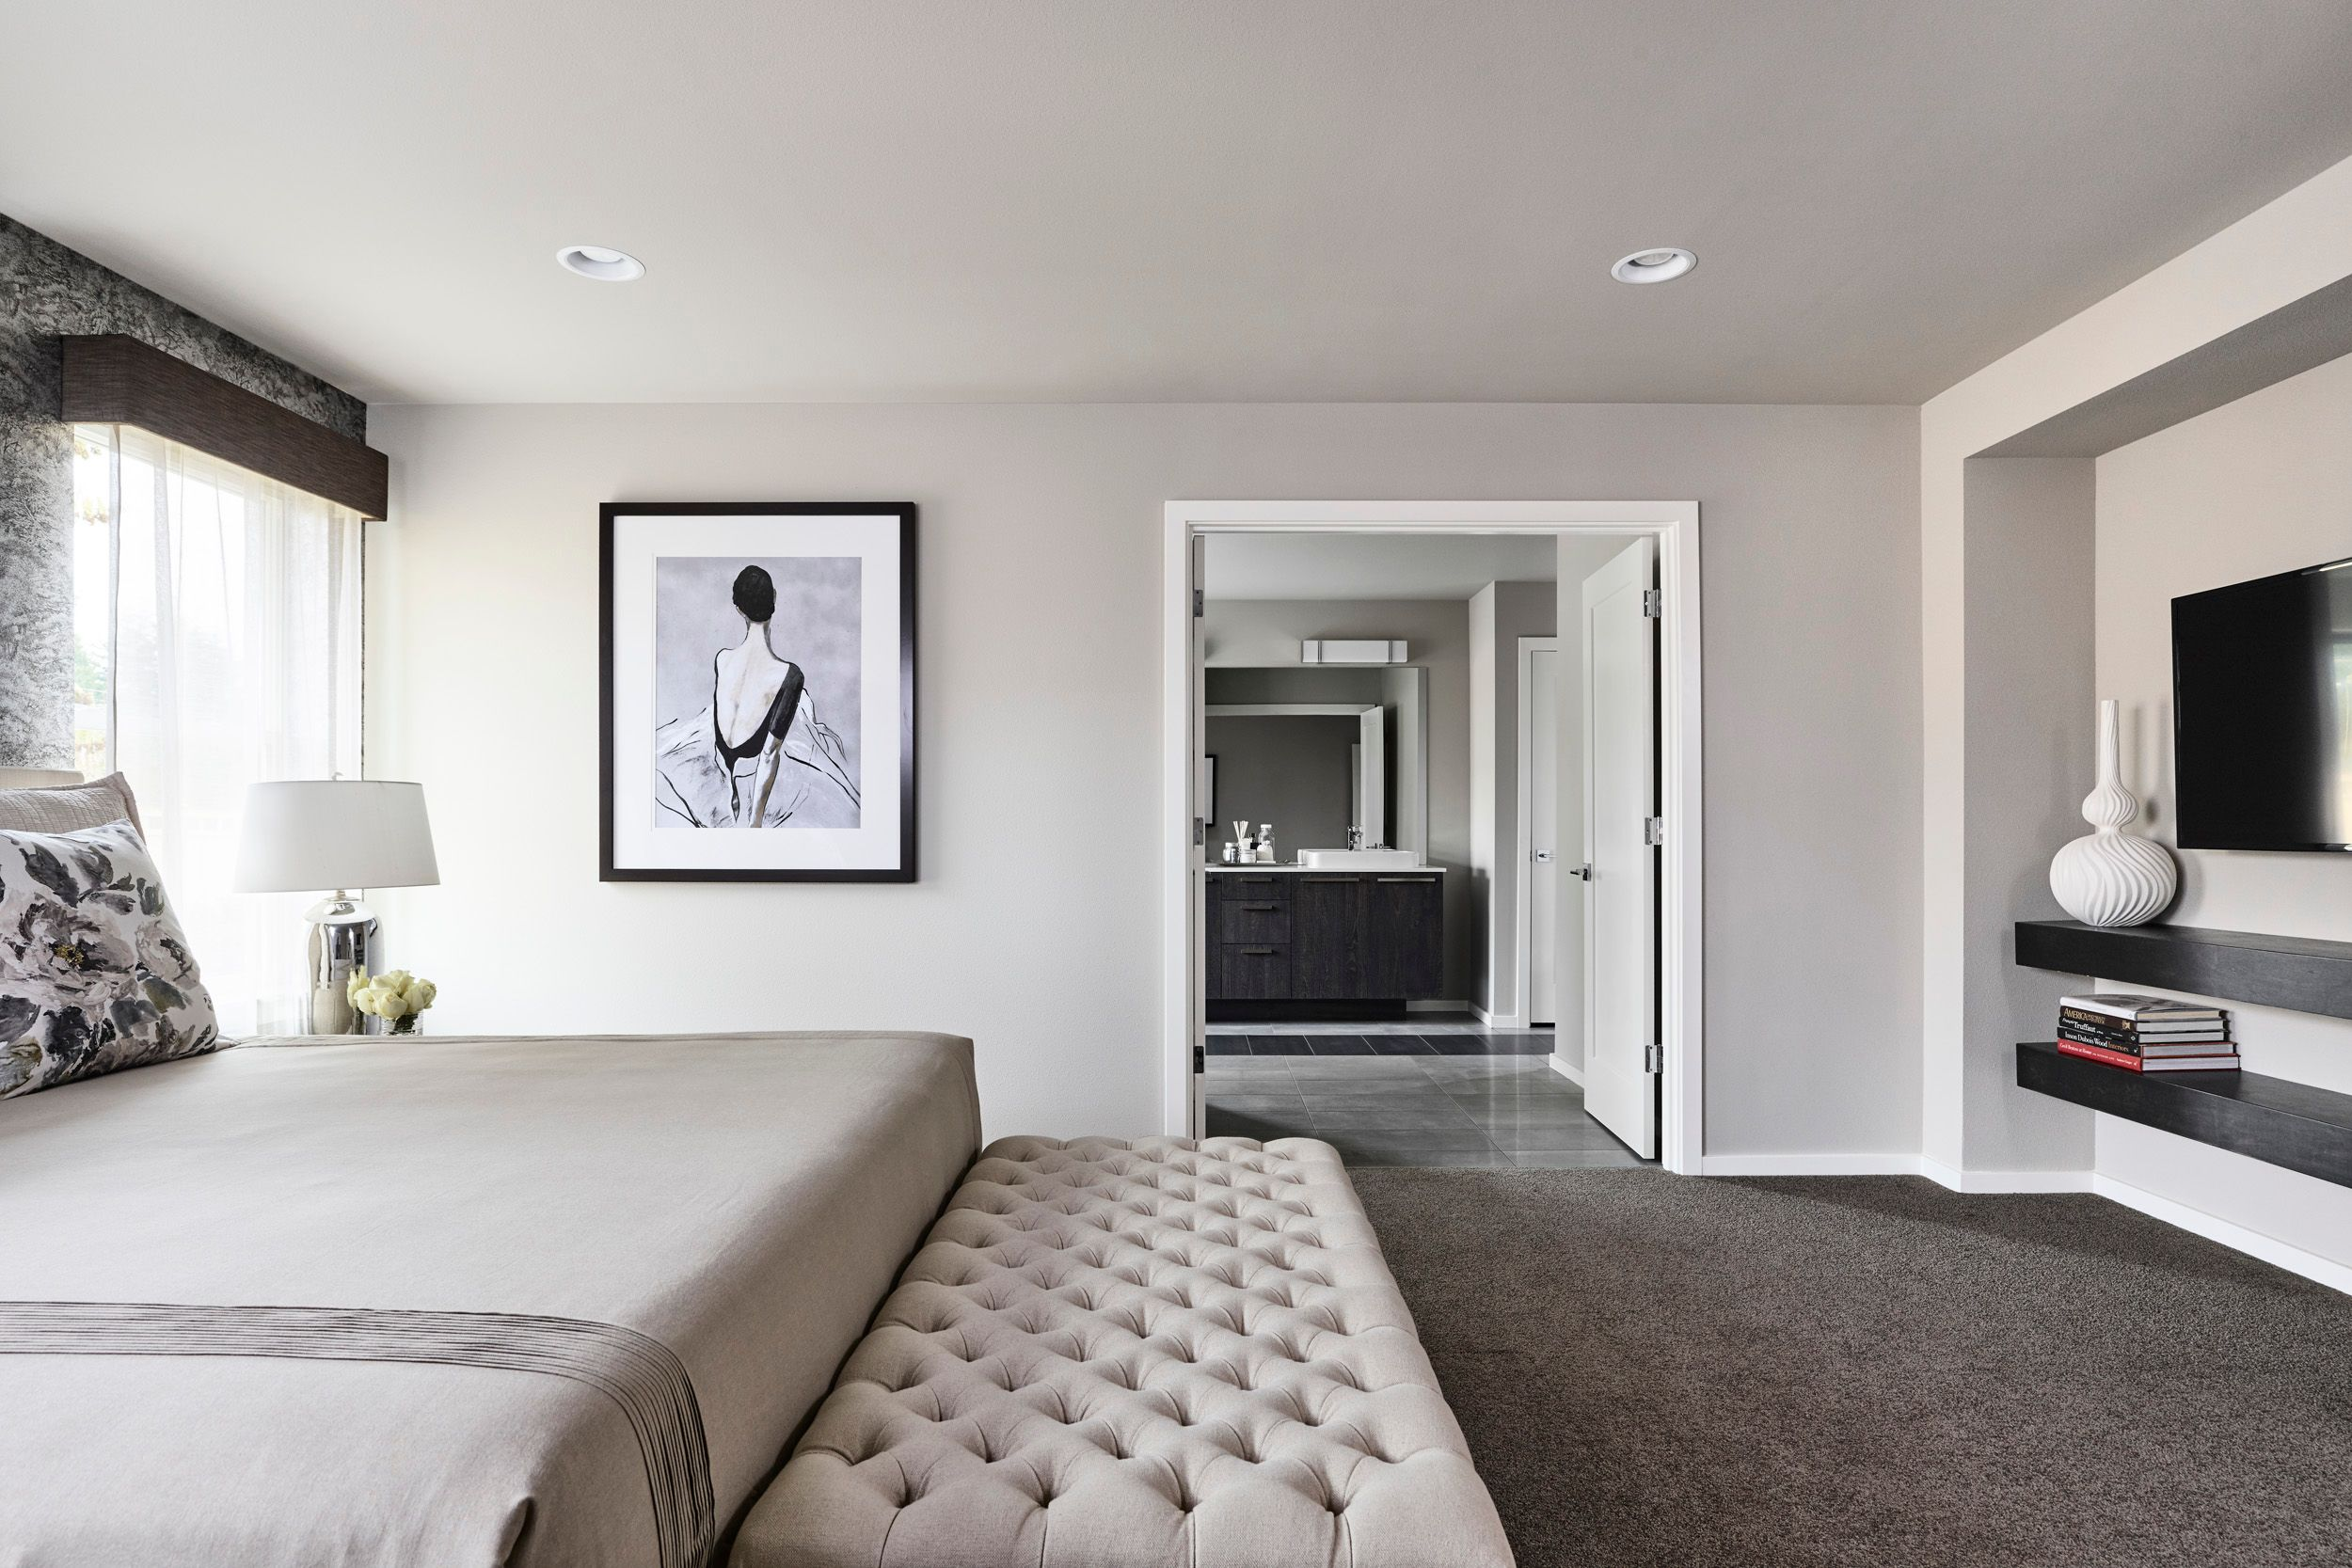 Bedroom featured in the Hudson By MainVue Homes in Seattle-Bellevue, WA